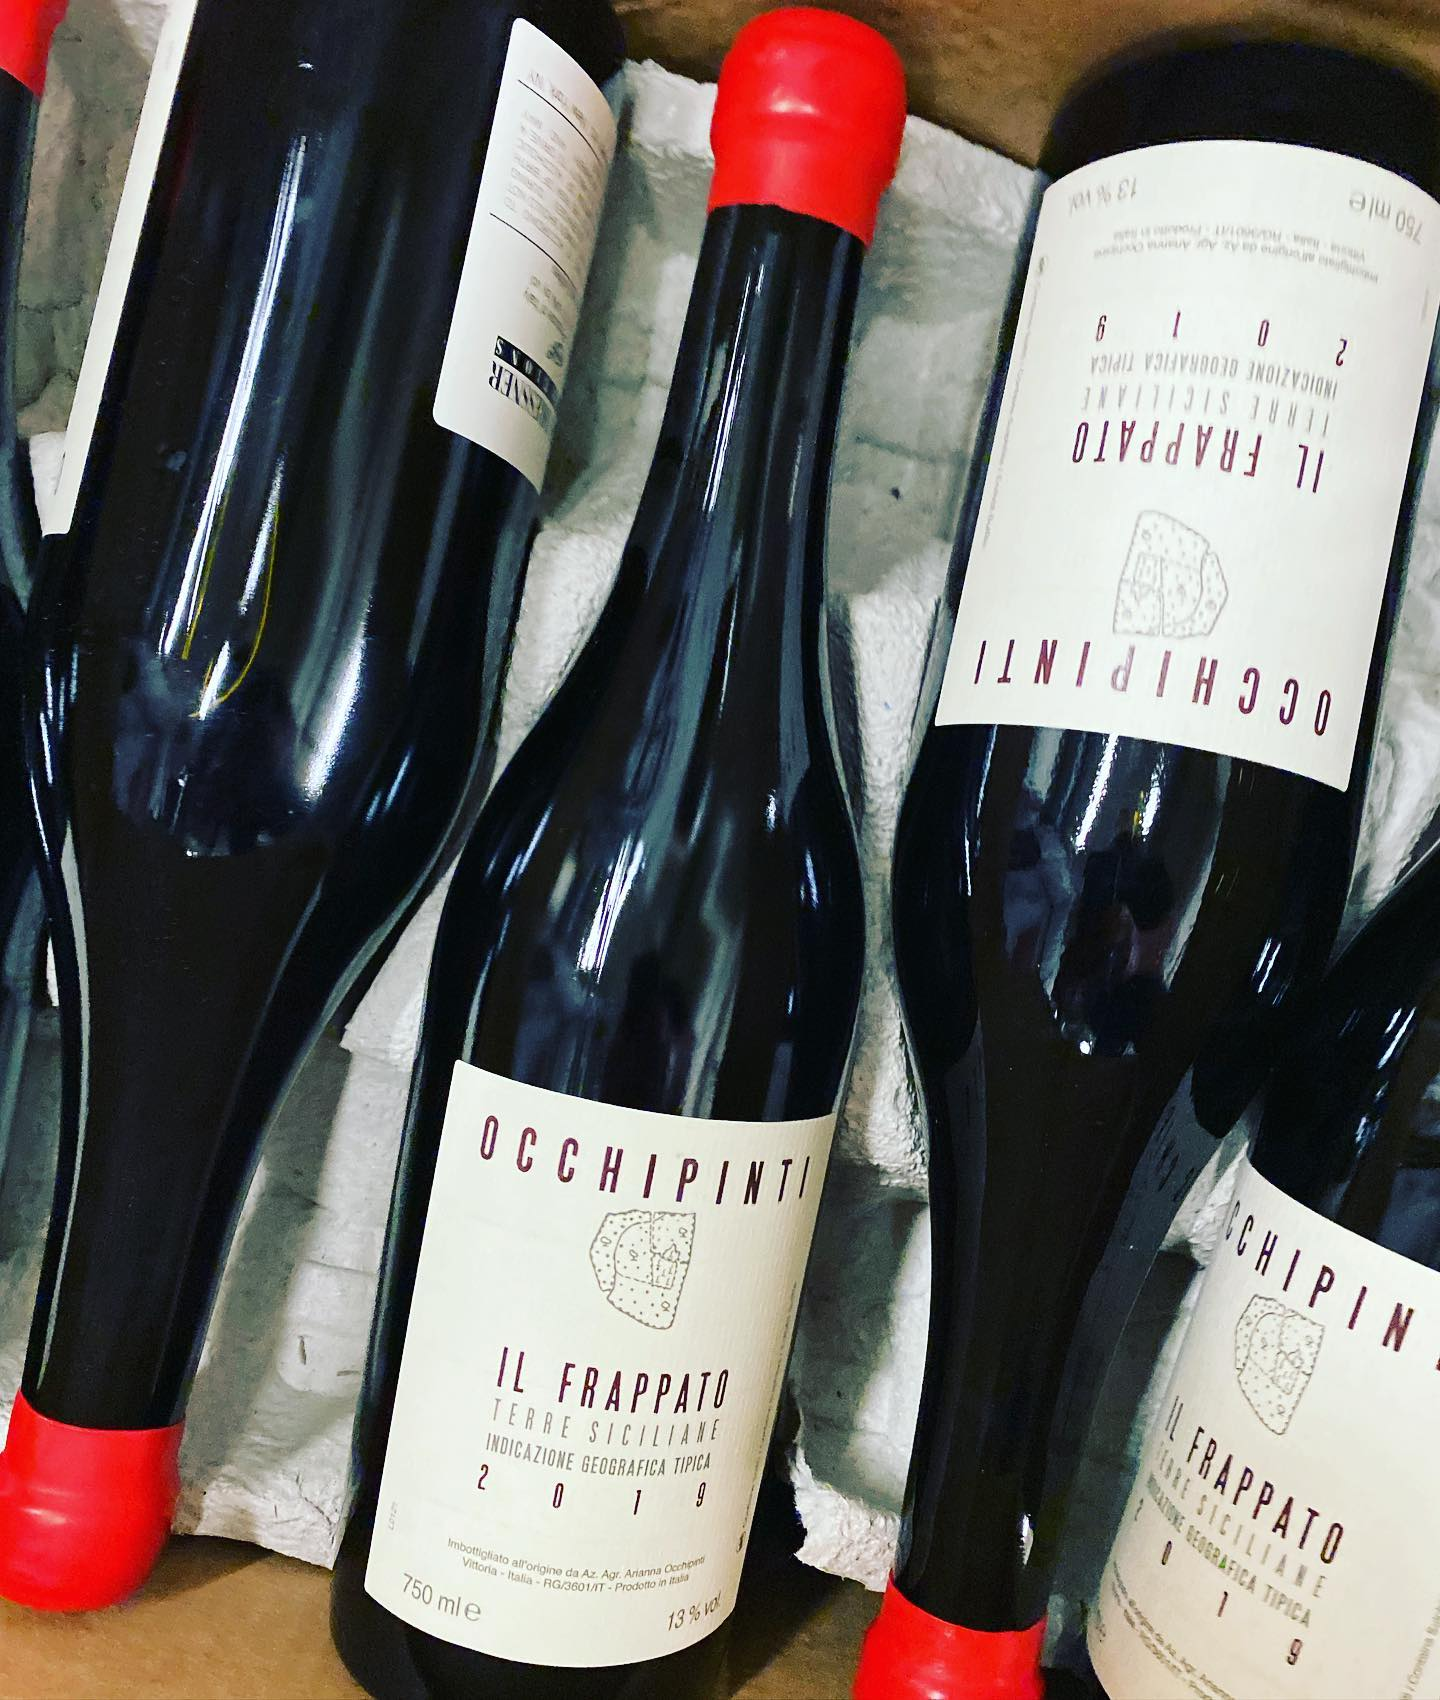 New vintage from @ariannaocchipinti available at Perkins! @louisdressnerselections . . . #wine #naturalwine #sicily #frappato